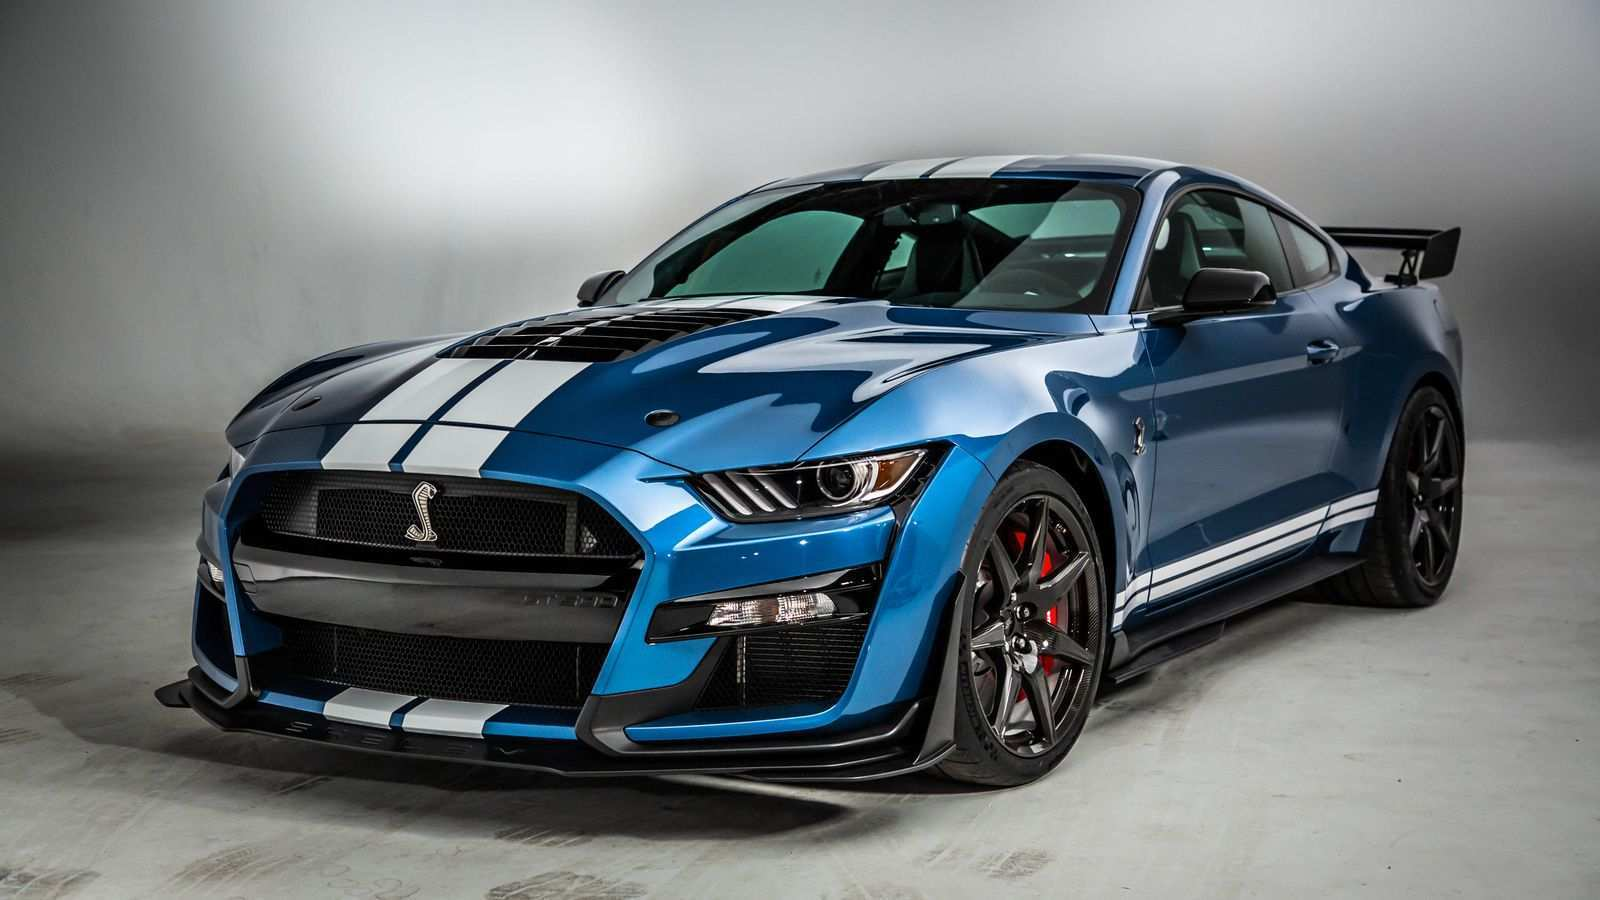 47 The Price Of 2020 Ford Mustang Gt500 Release